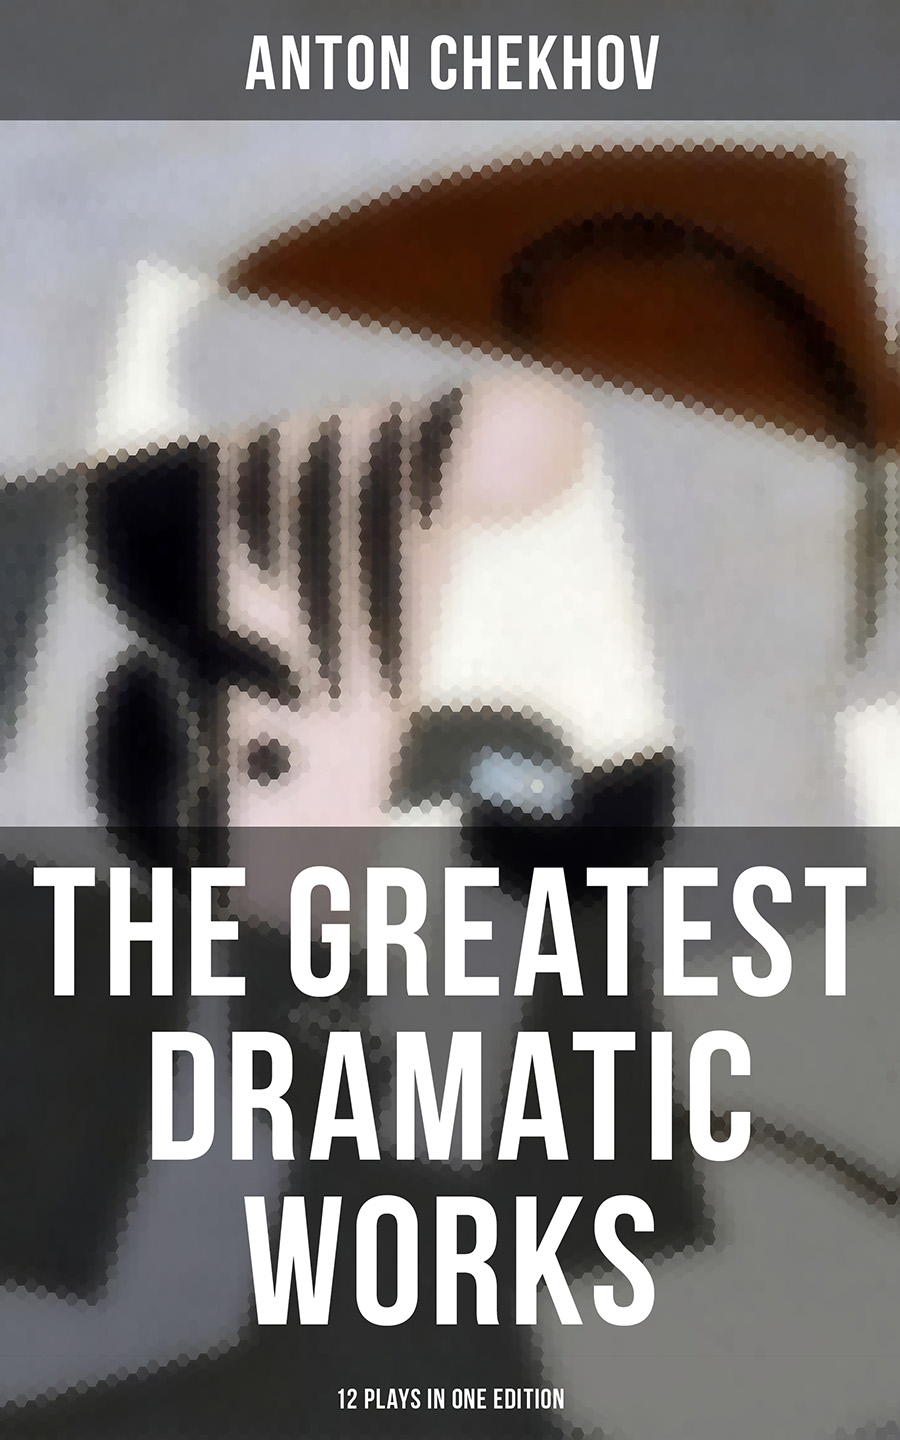 the greatest dramatic works of anton chekhov 12 plays in one edition